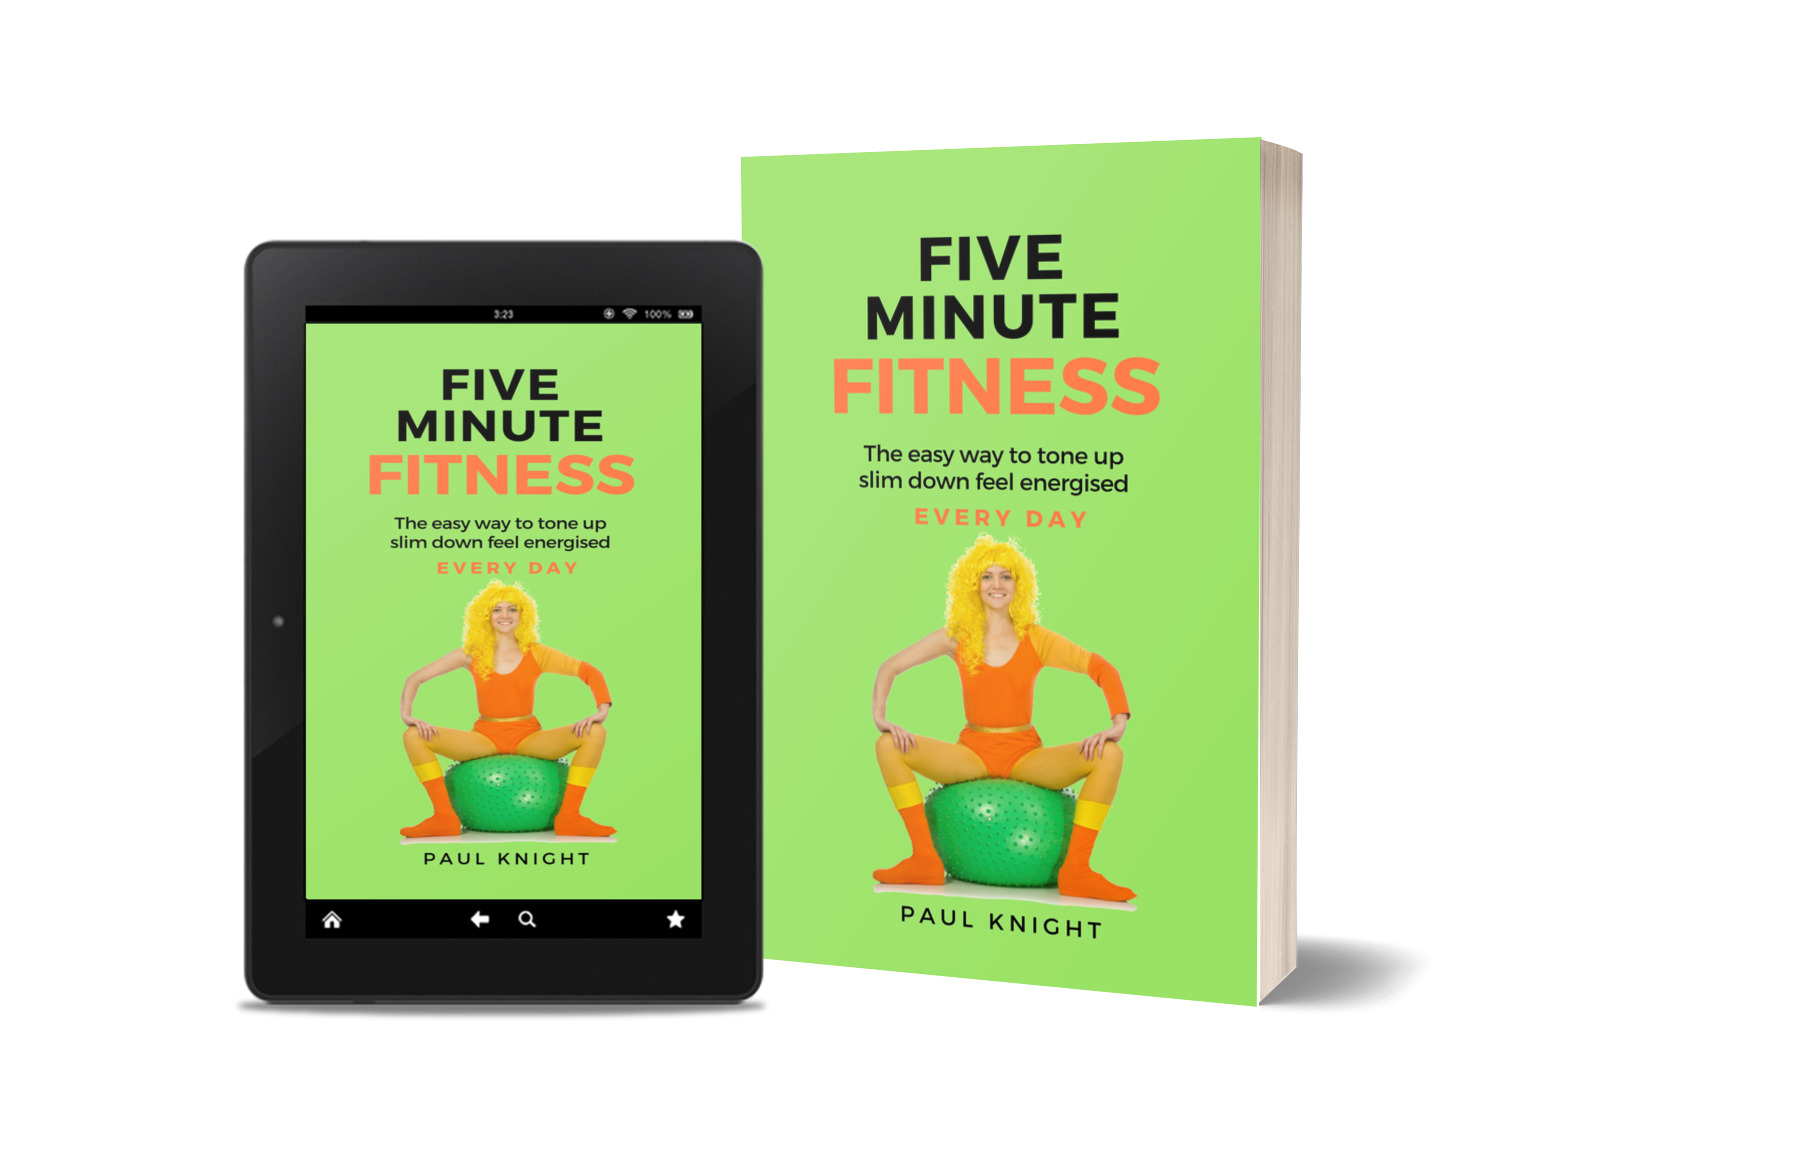 fitness weight loss lfestyle books paul knight coaching